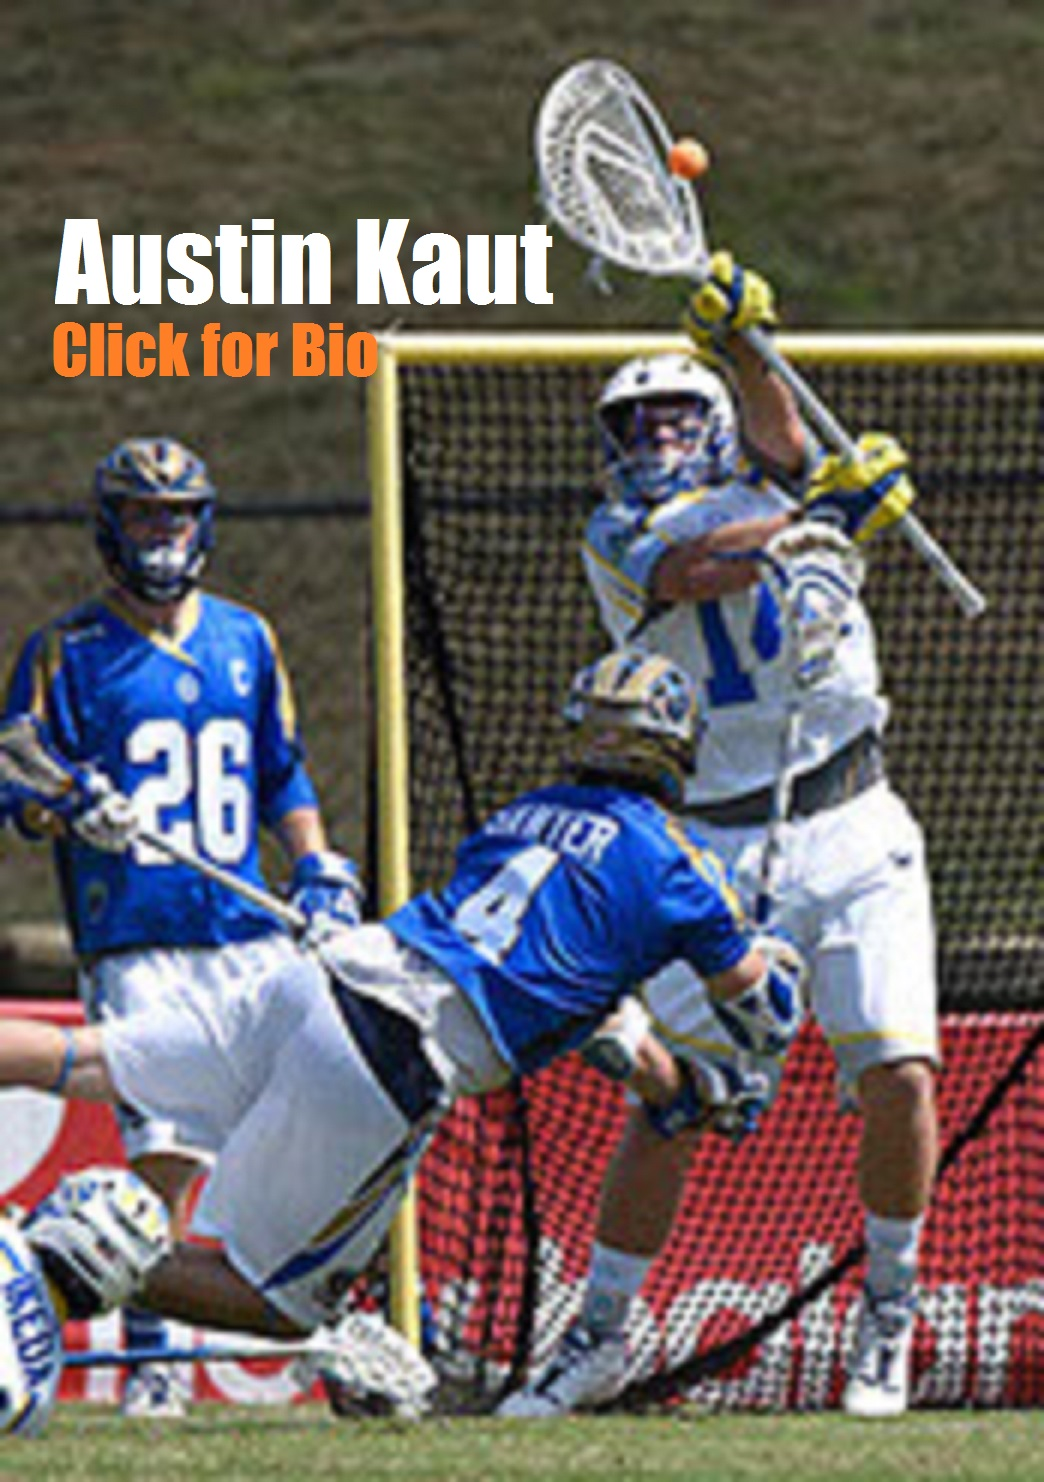 Austin Kaut  MVP Springfield High School 2010  Delaware County Player of the Year 2010  2-Time All-State 2009 and 2010  High School All-American 2010  Penn State University Men's Lacrosse Team Capitan 2013-2014  CAA Rookie of the Year 2011  4-Time All-CAA First Team 2011-2014  USILA Honorable Mention All-American 2011  USILA Third Team All-American 2012  Ensign C. Markland Kelly, Jr. Award 2013 (Nation's Best Goalie)  USILA First Team All-American 2013  CAA Player of the Year 2013  2-Time CAA Defensive Player of the Year 2013 and 2014  USILA Third Team All-American 2014  USILA Scholar All-American 2014  Member of the MLL Boston Cannons